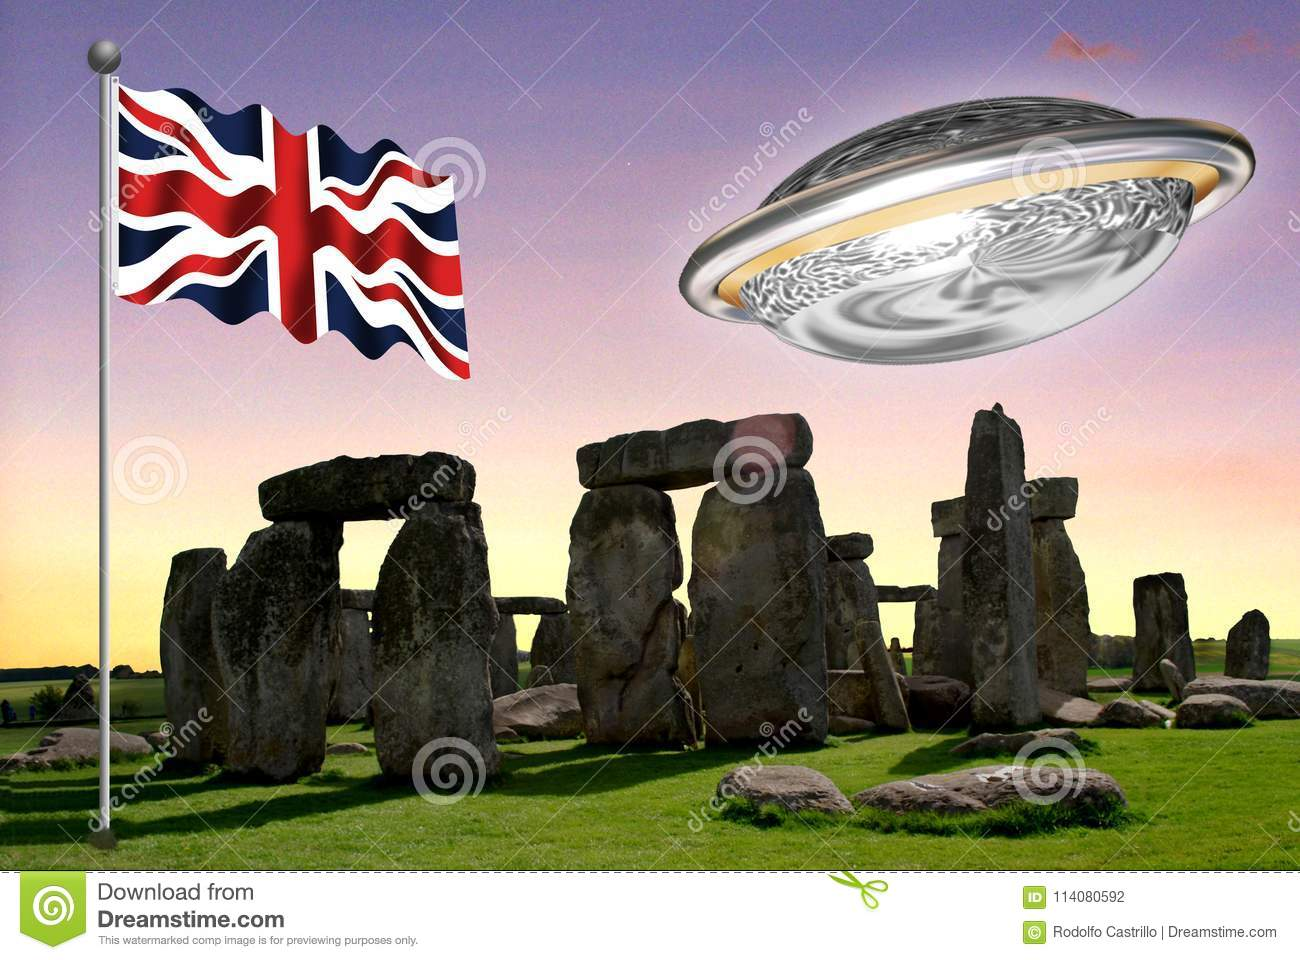 Stonehenge with the Union Jack with a flying saucer 2